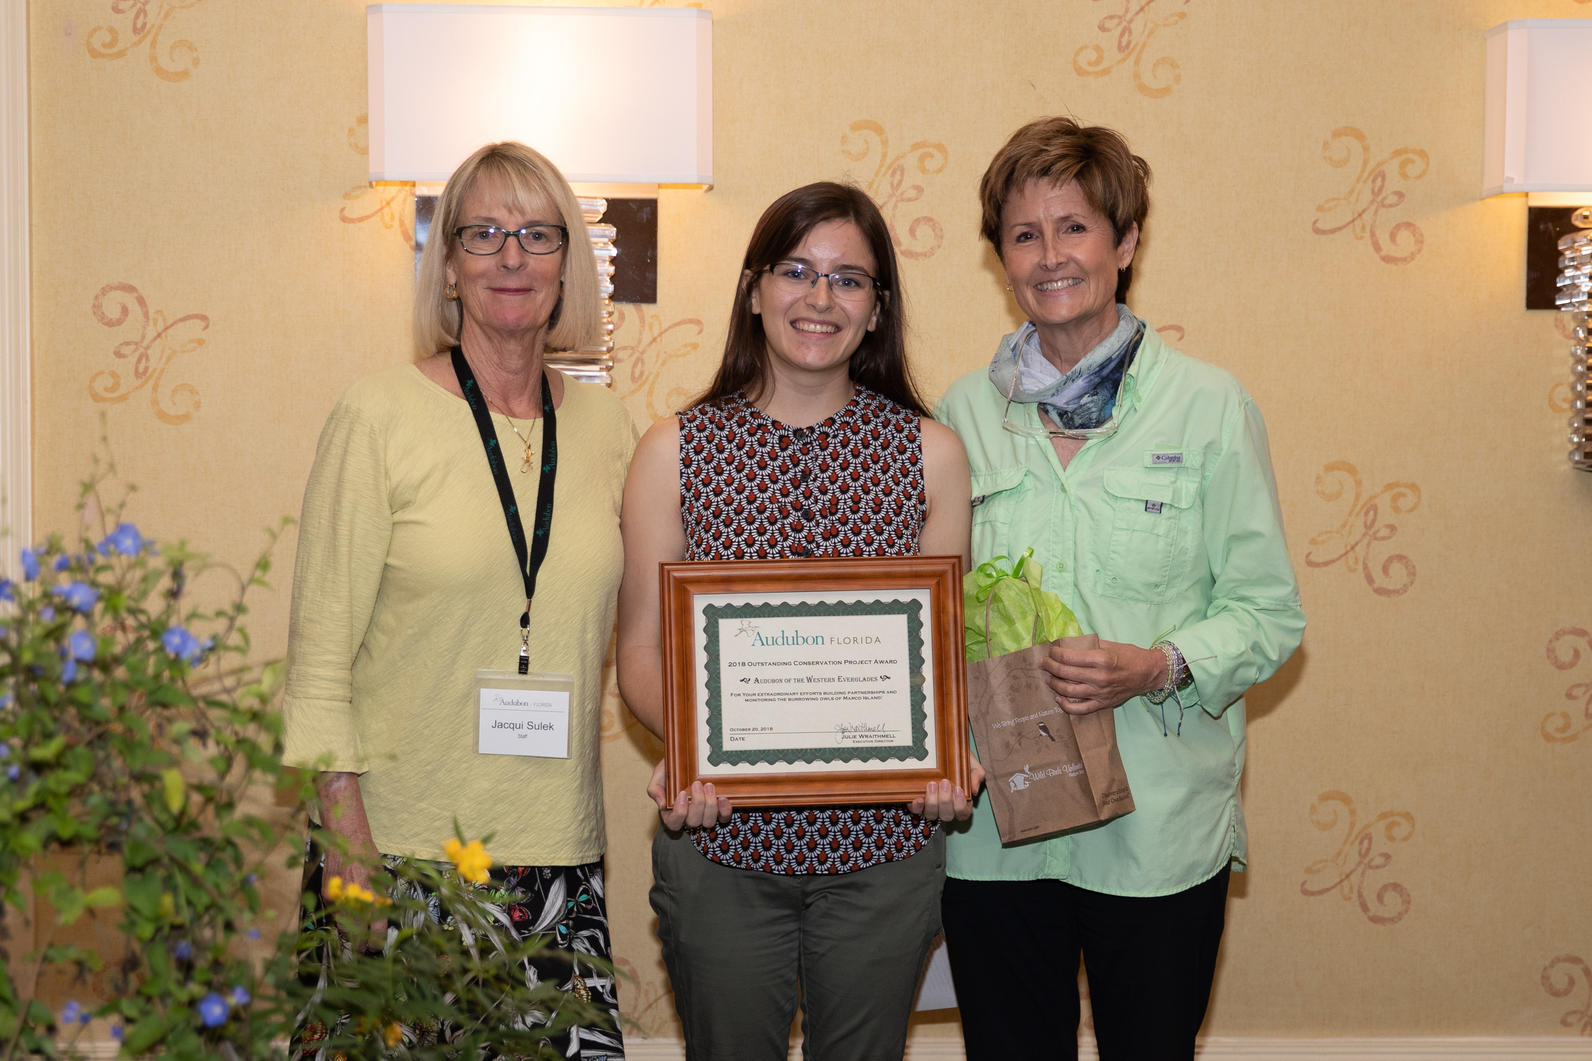 Photographer Jean Hall and Biologist Allison Smith accepted the award.